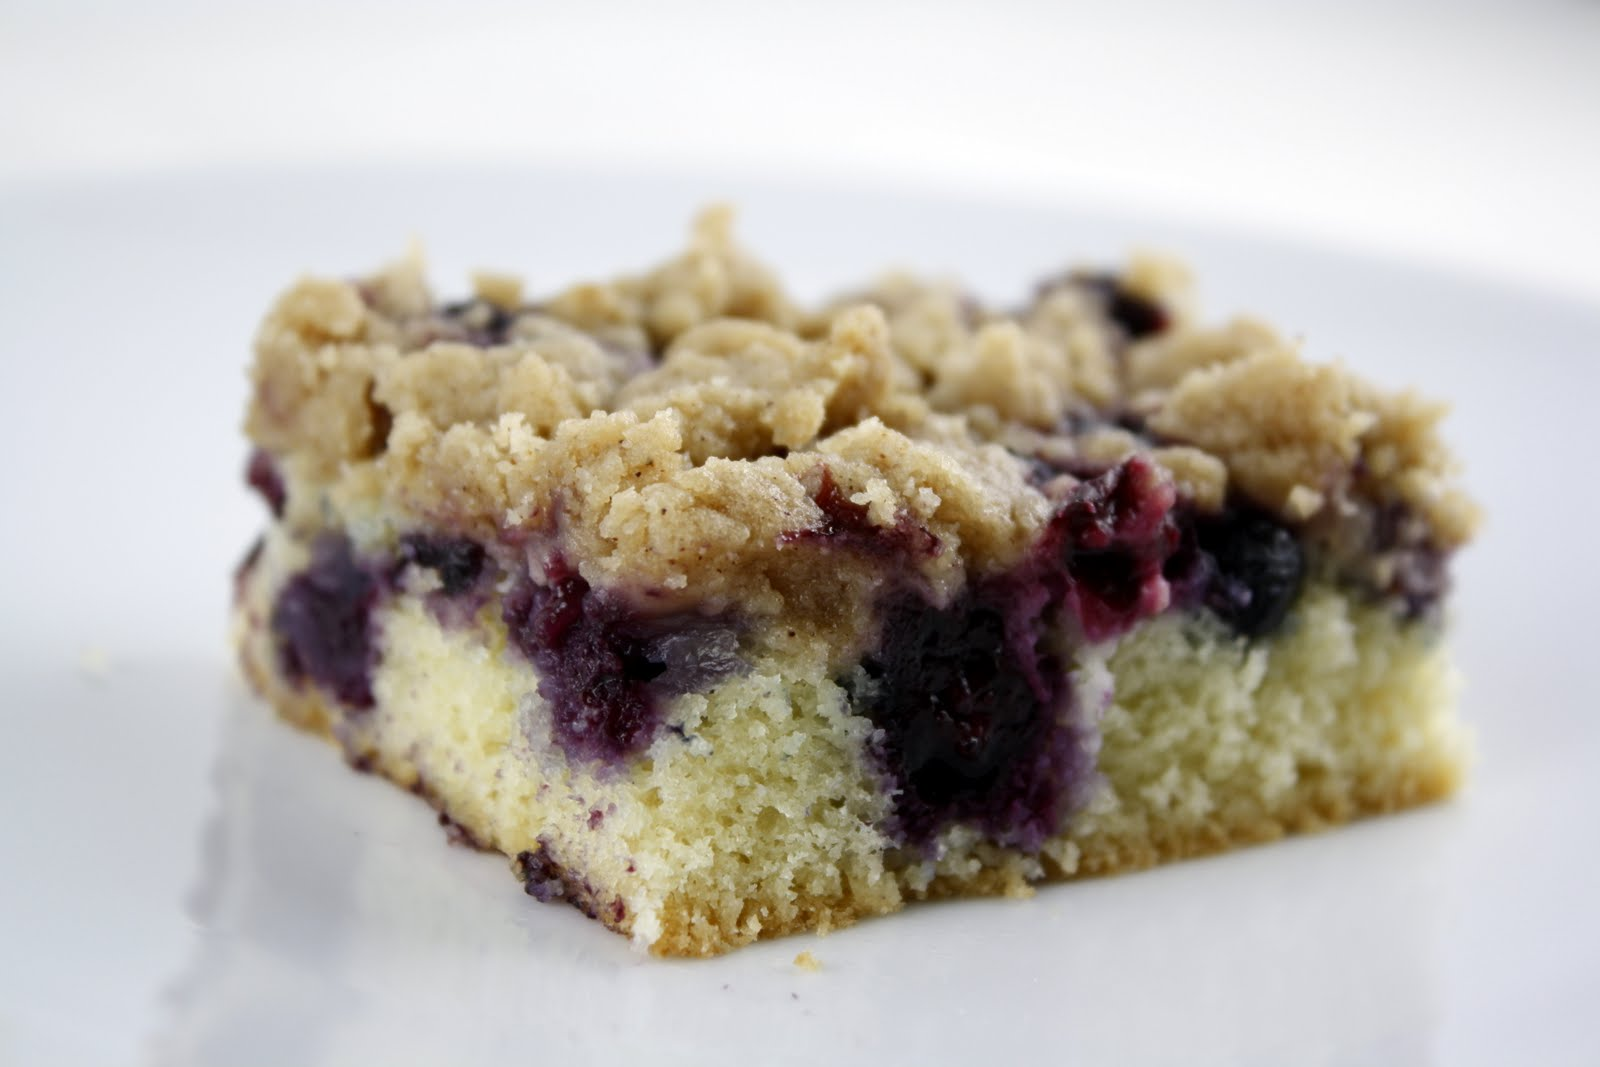 How To Make A Blueberry Crumb Cake